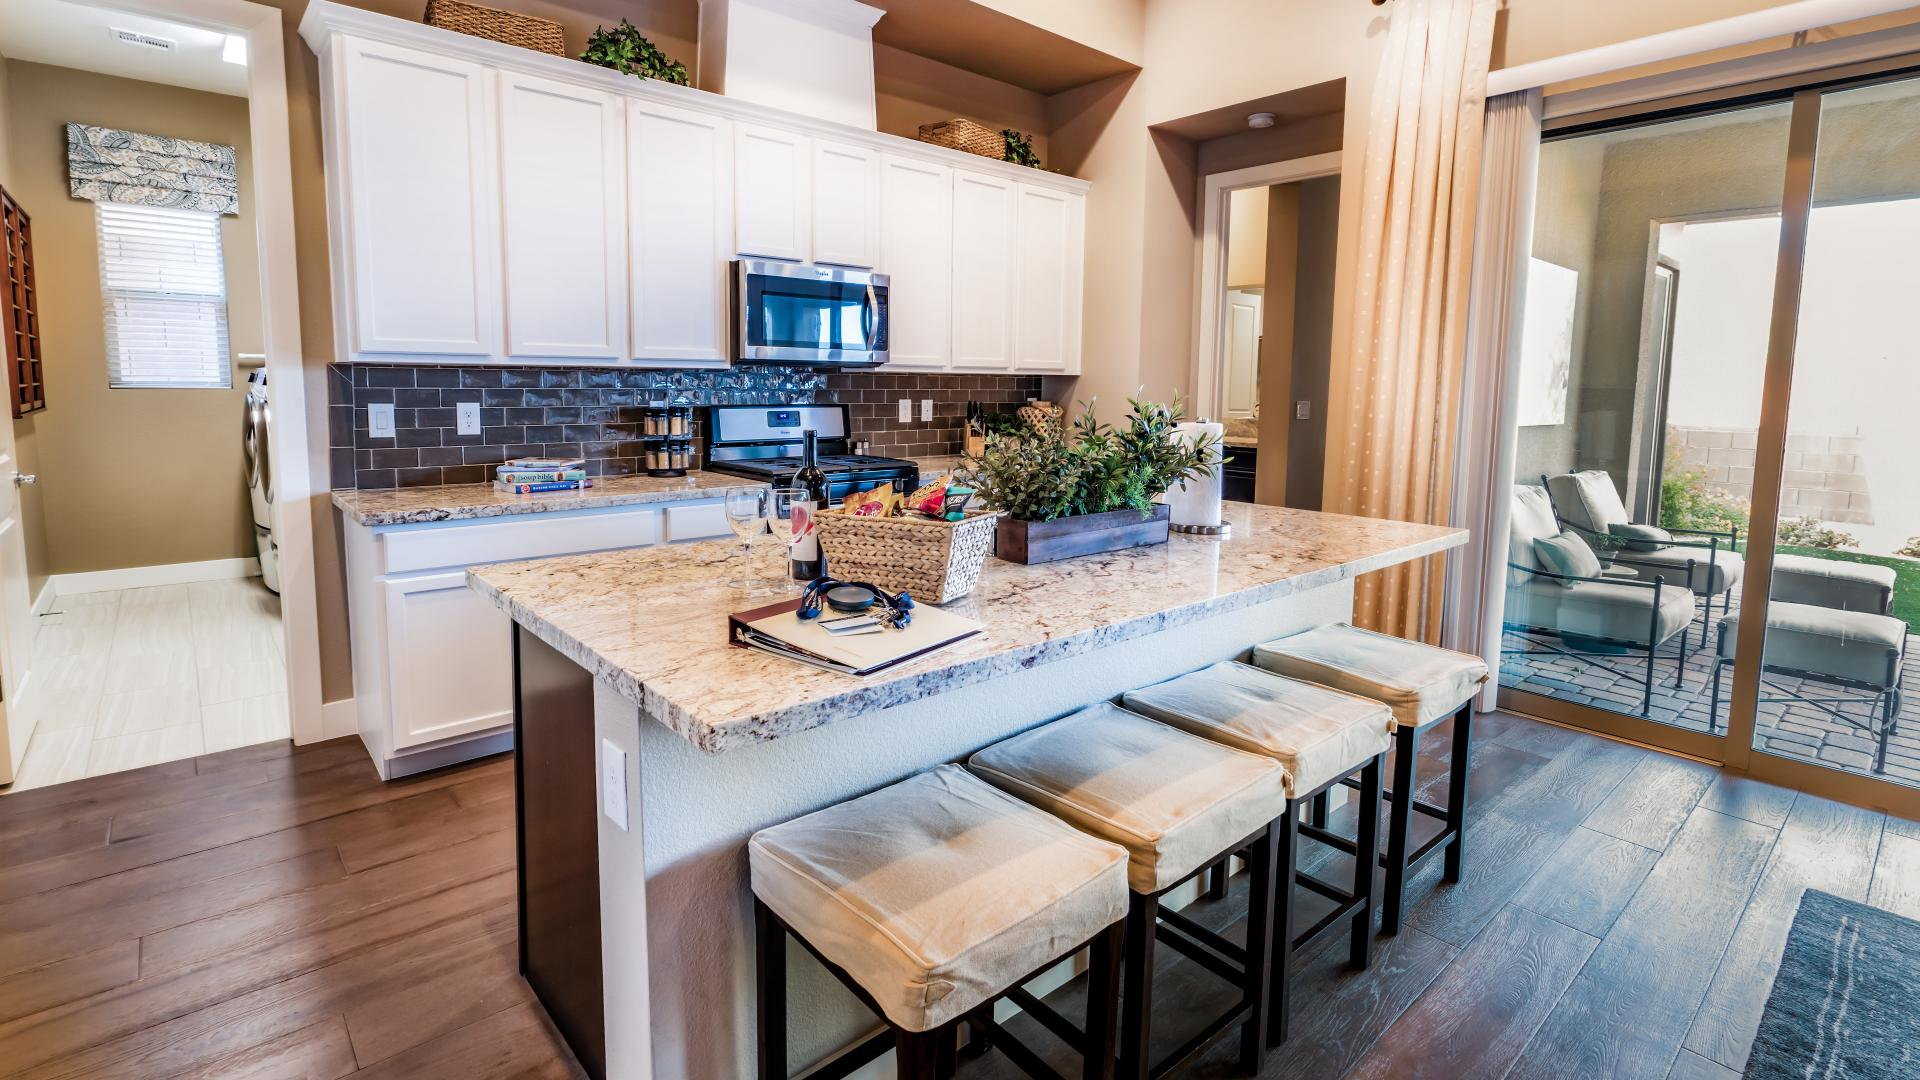 The kitchen offers expansive cabinet and counter space